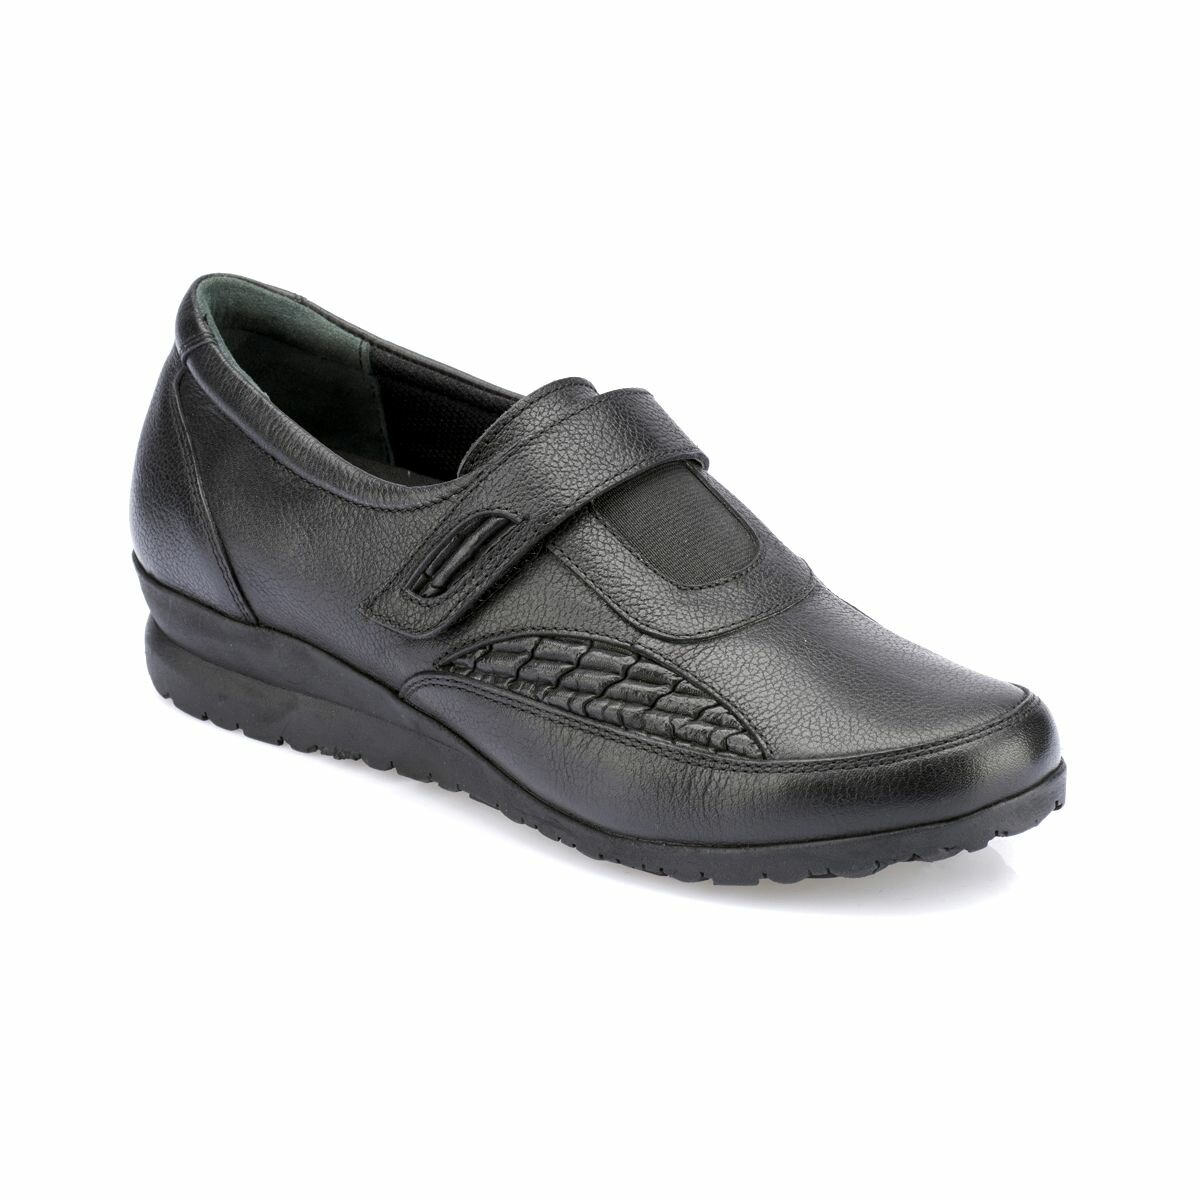 FLO 82.100124.Z Black Women Shoes Polaris 5 Point